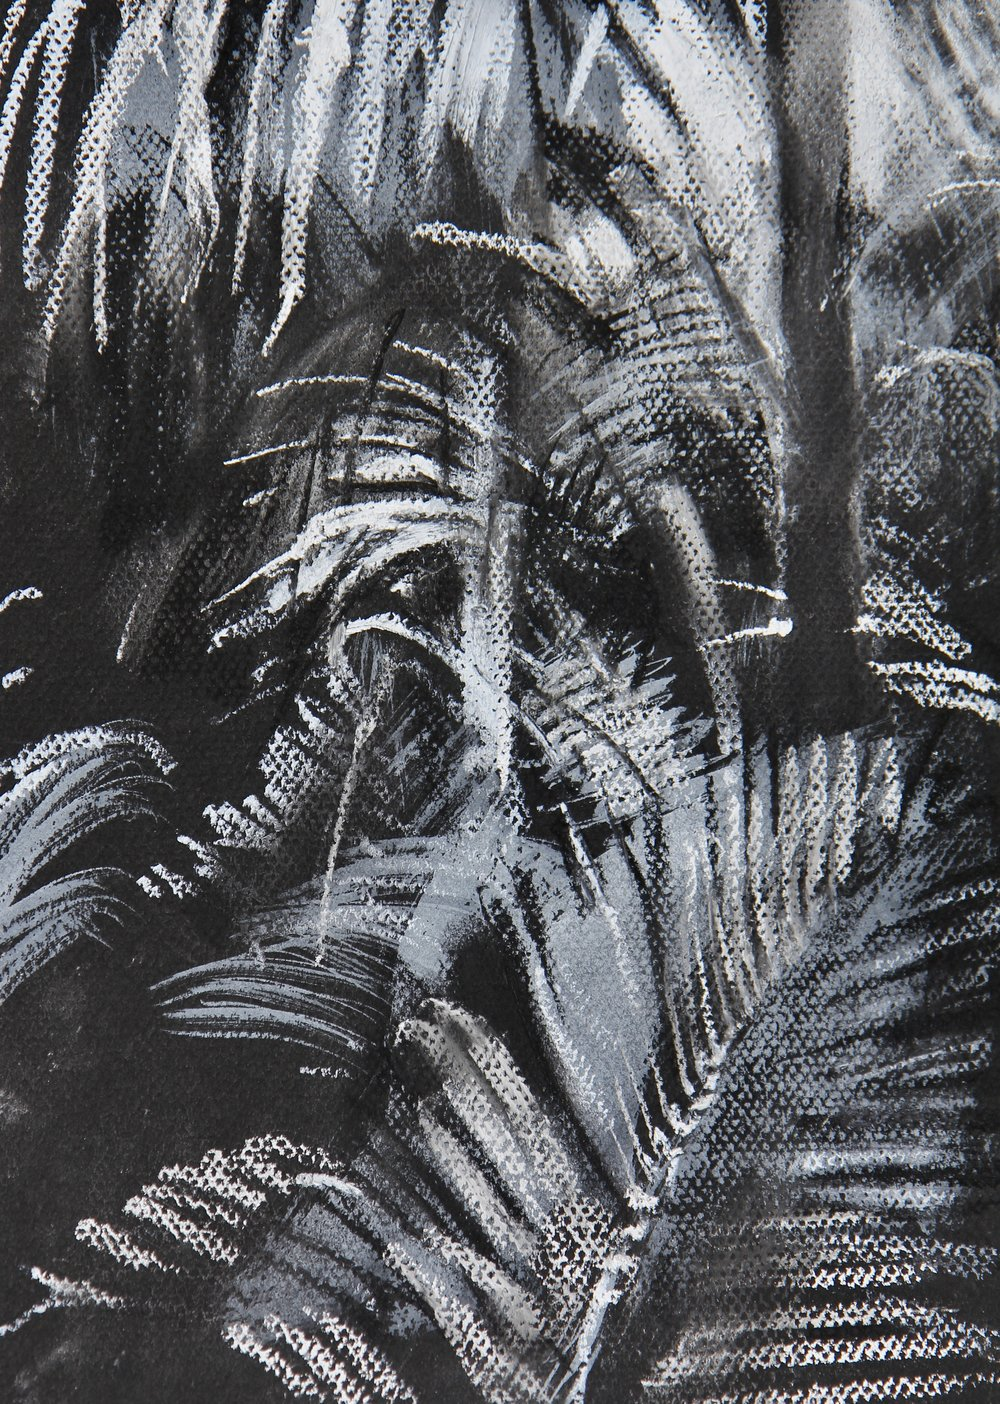 In the Palm House, Kew (2) - 21 x 29cm, pastel on black paper. Mounted on acid-free board £295